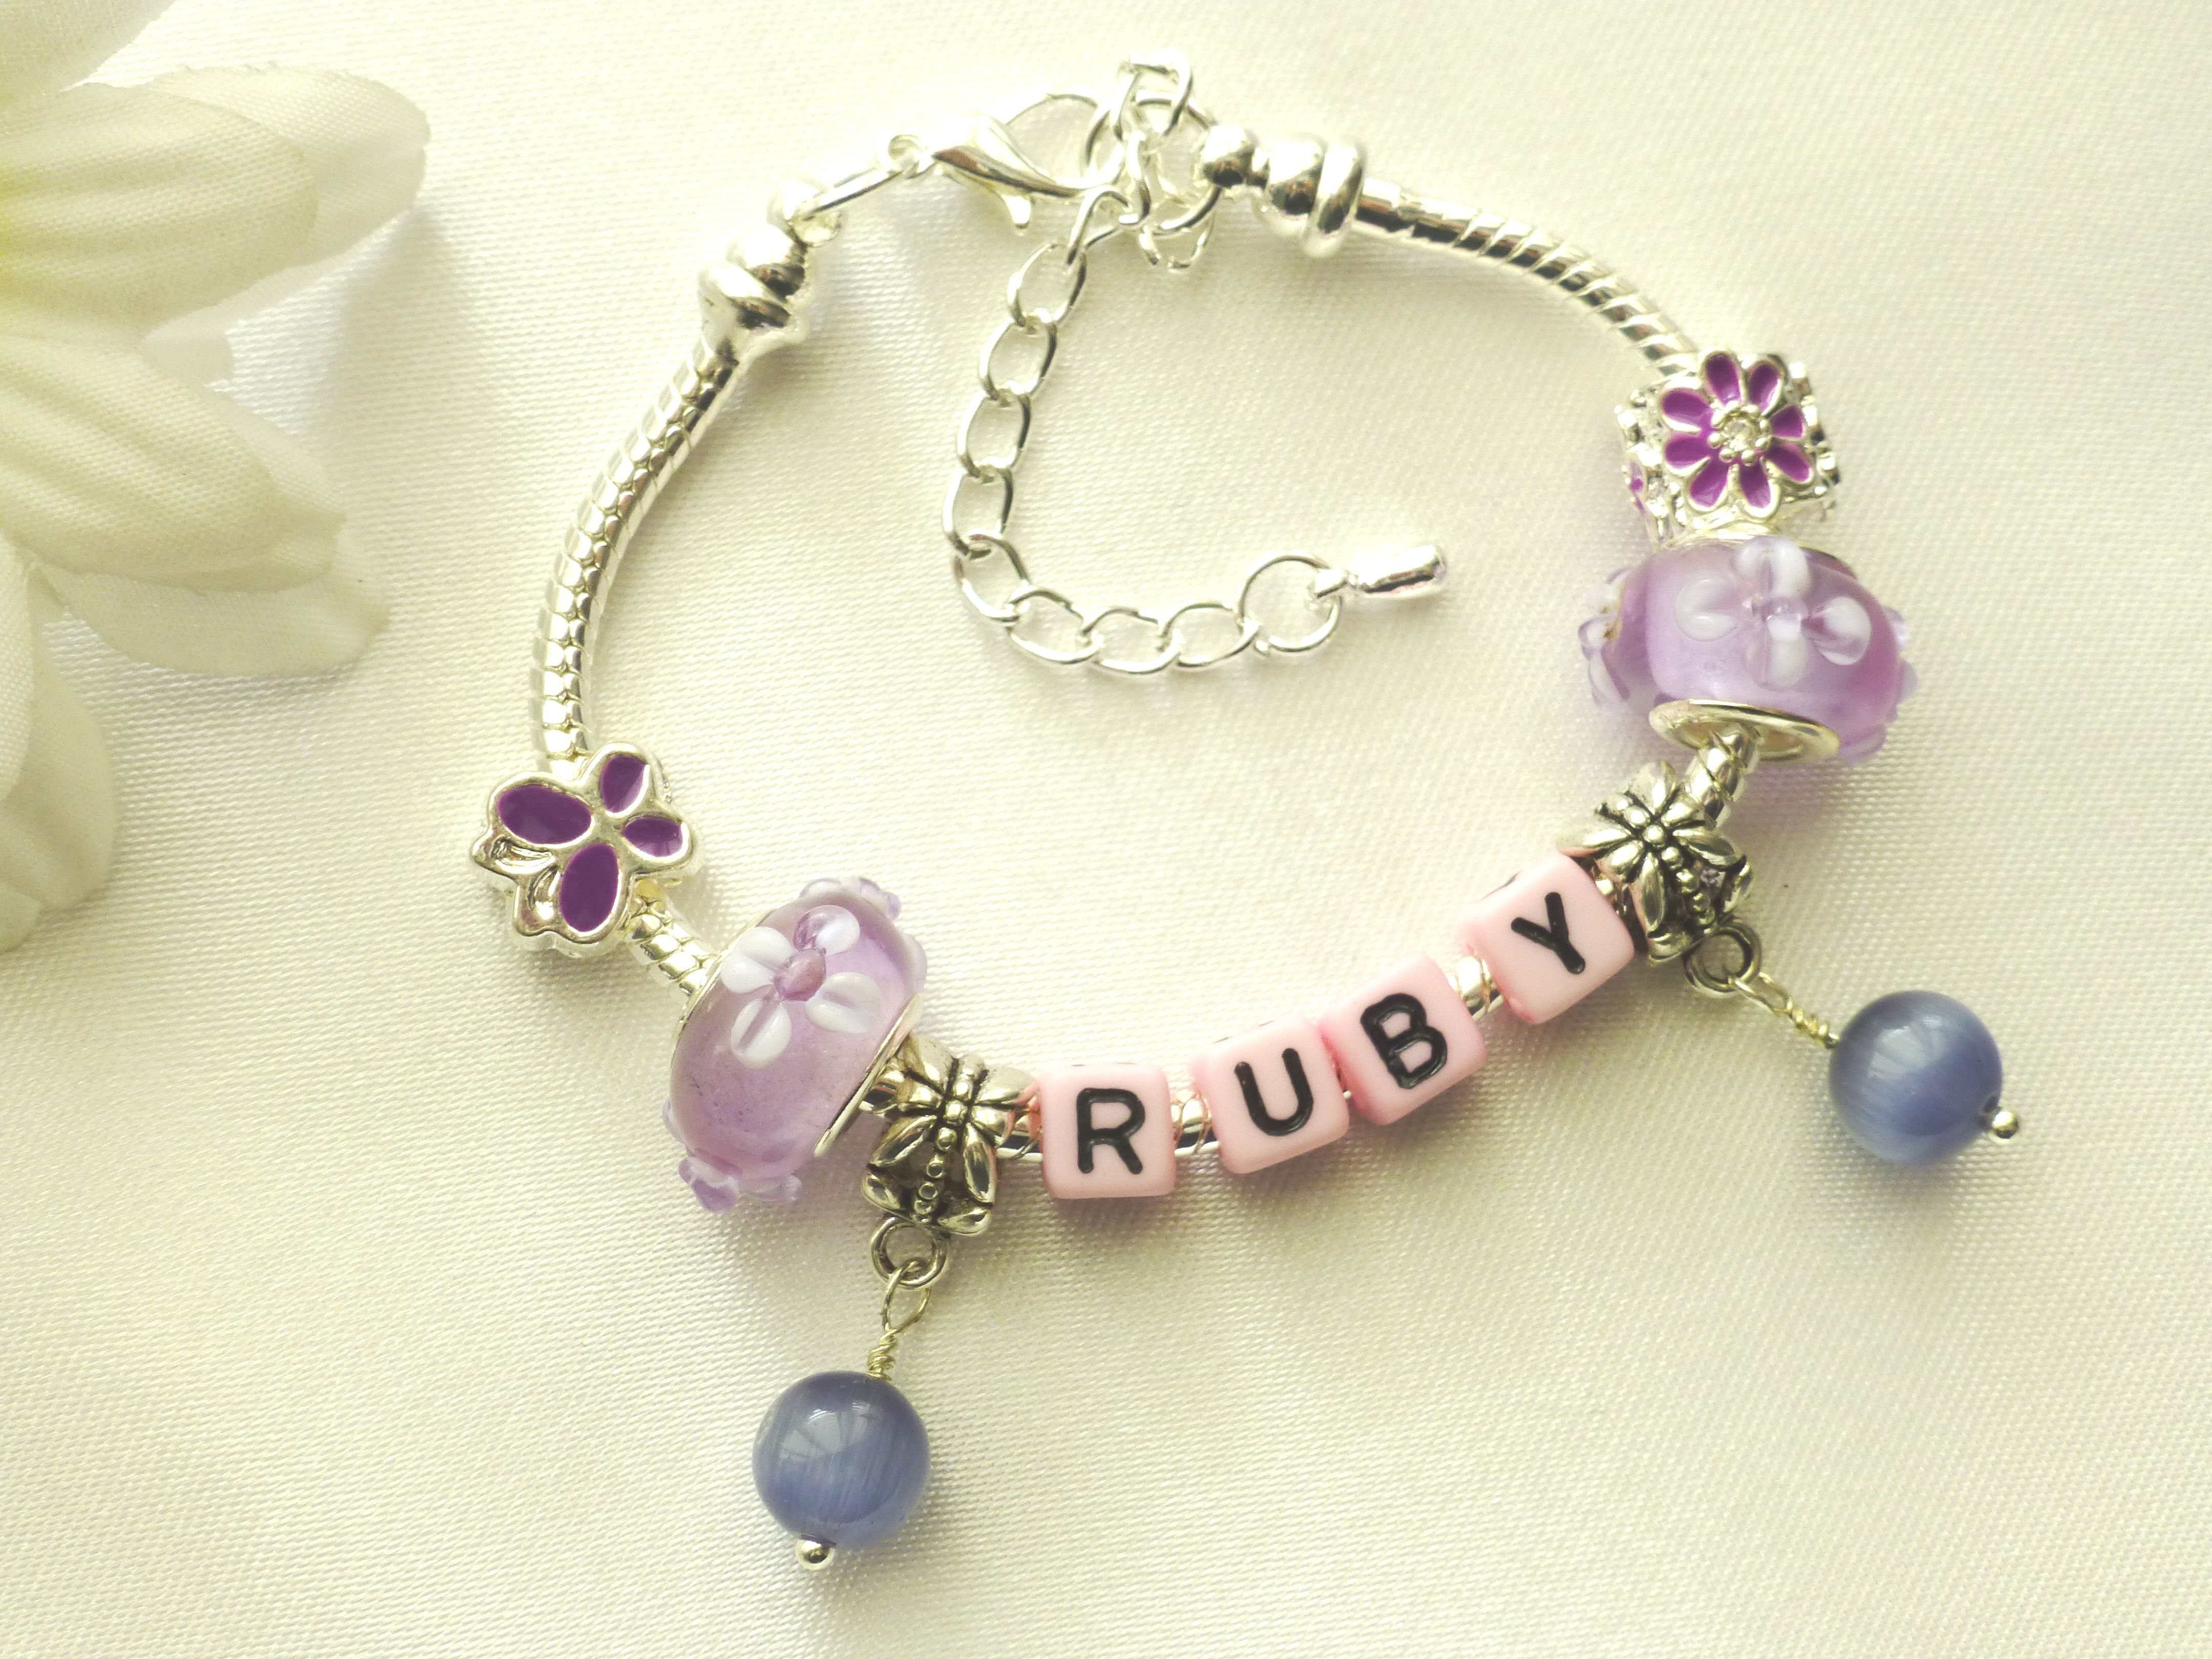 Purpal Charms & Pink Letter Blocks Name Charm Braceletplete With Charms   To View All